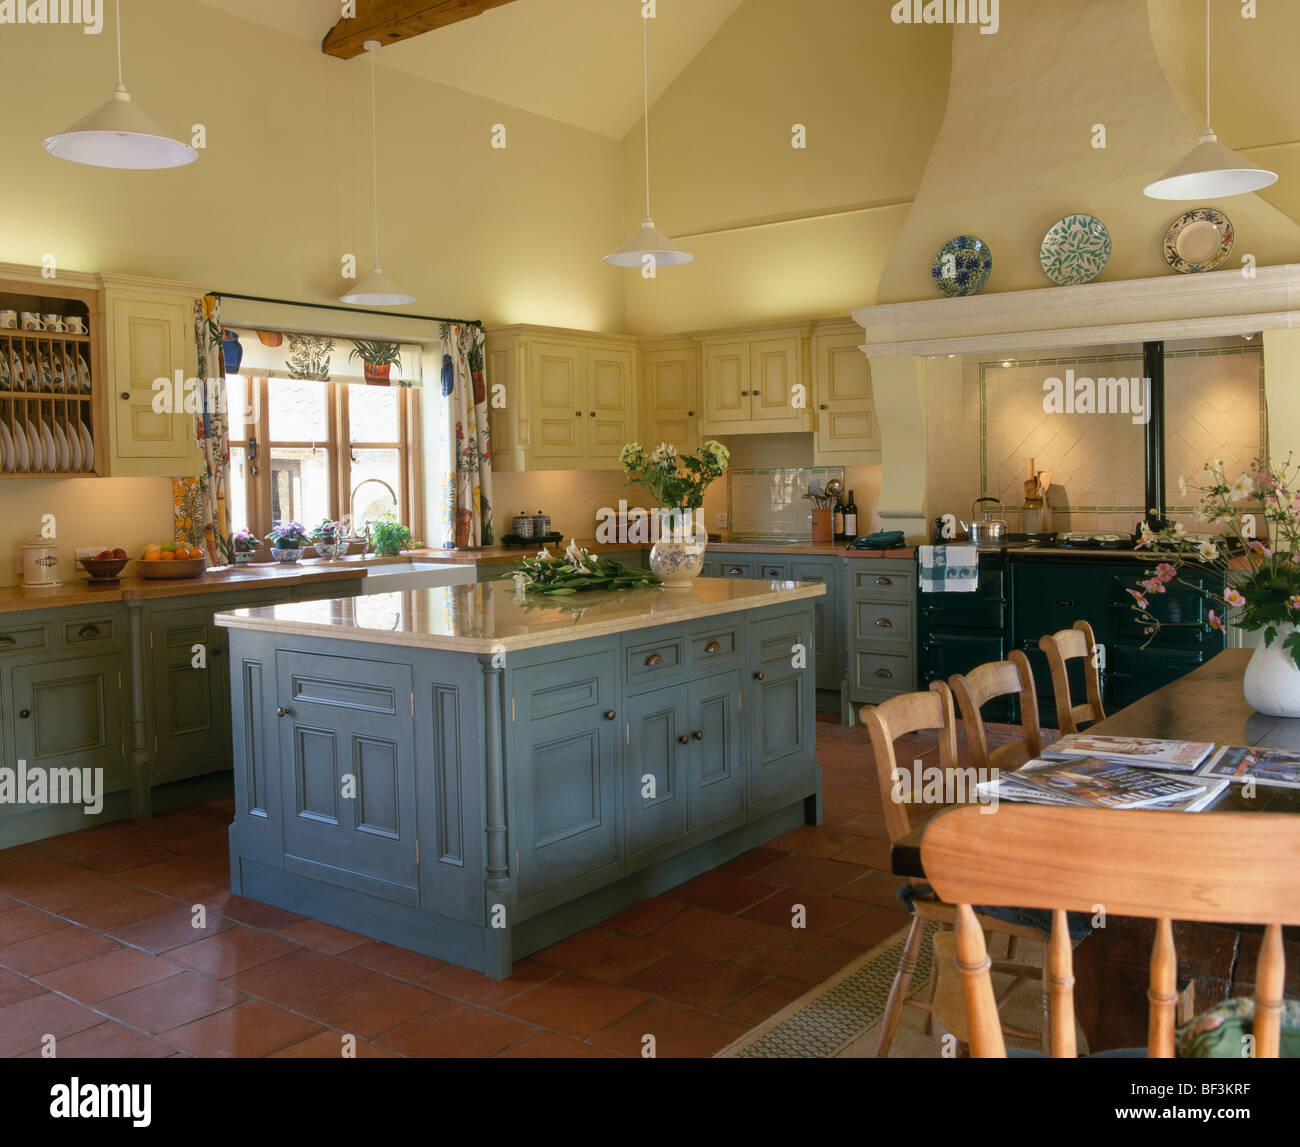 Blue Grey Yellow Kitchen: Blue-gray Island Unit In Traditional Yellow Country